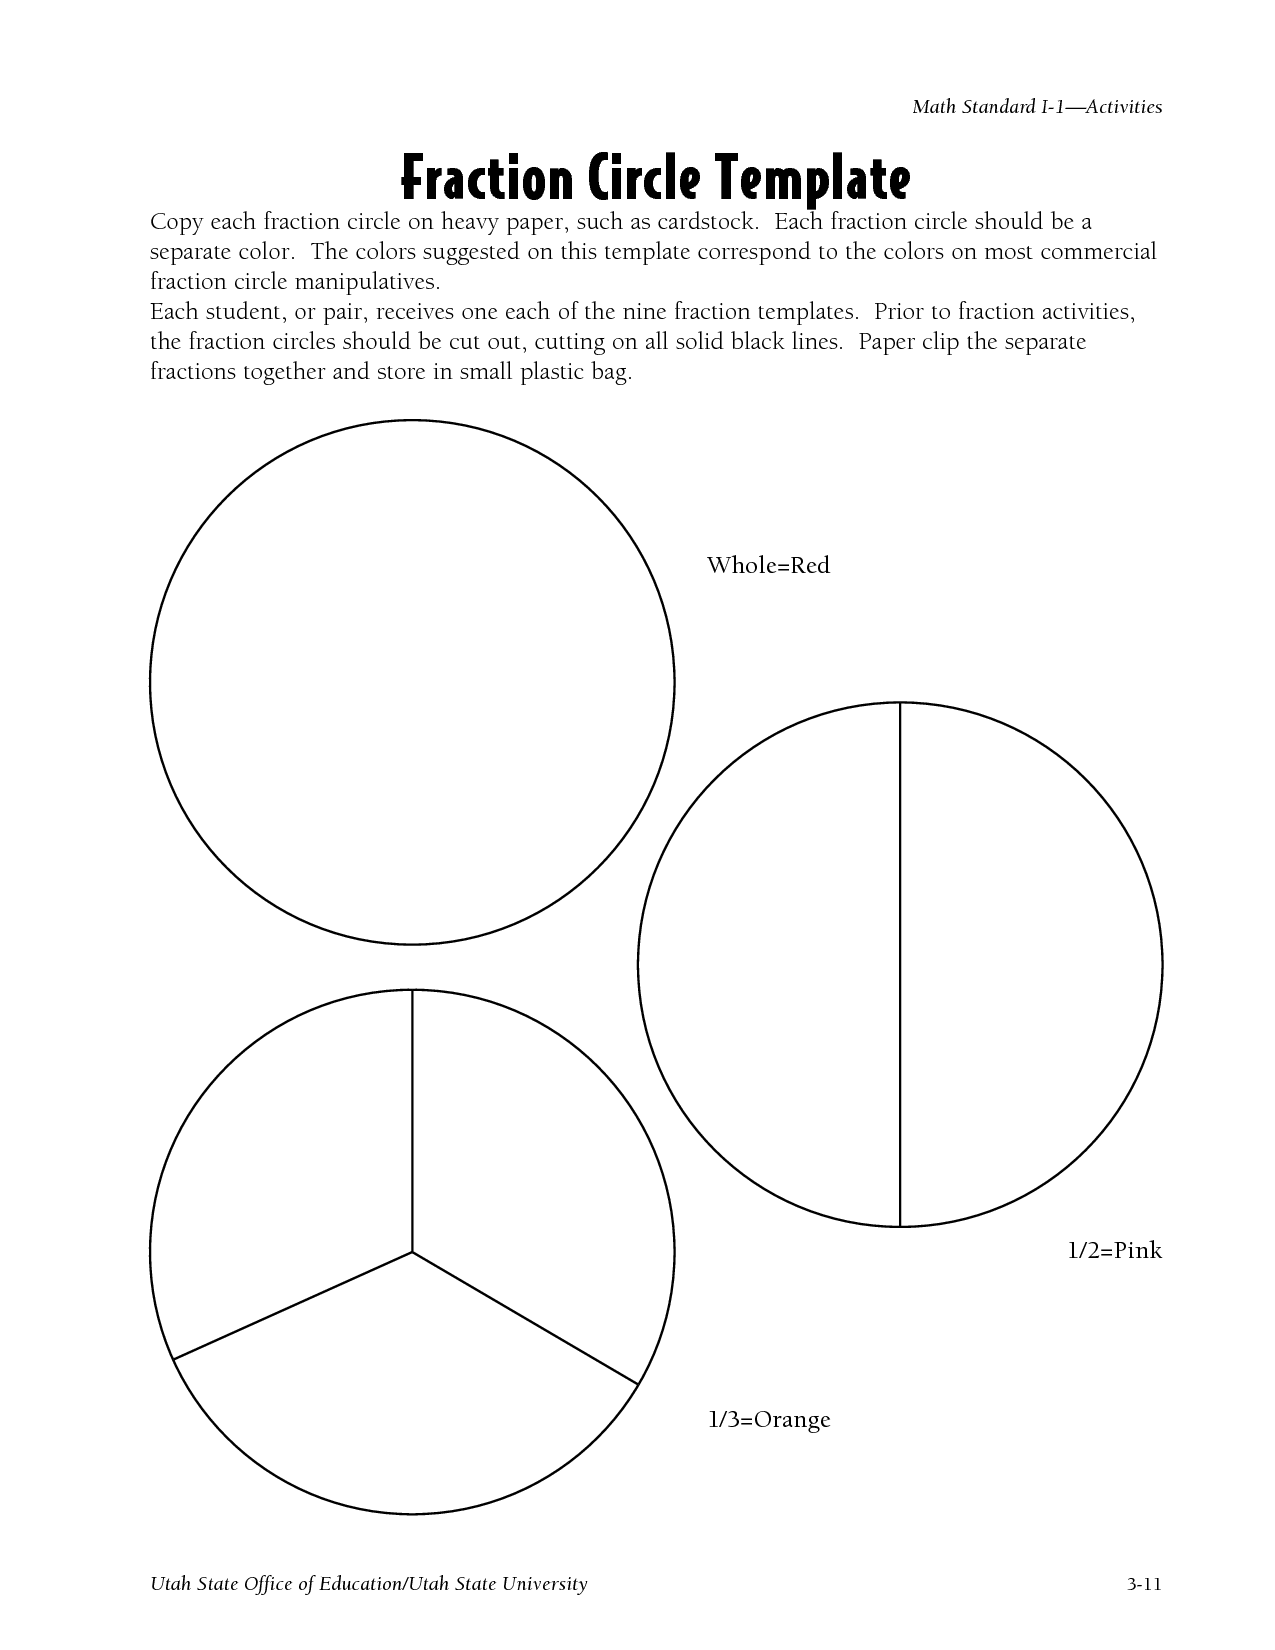 Blank Fraction Circles